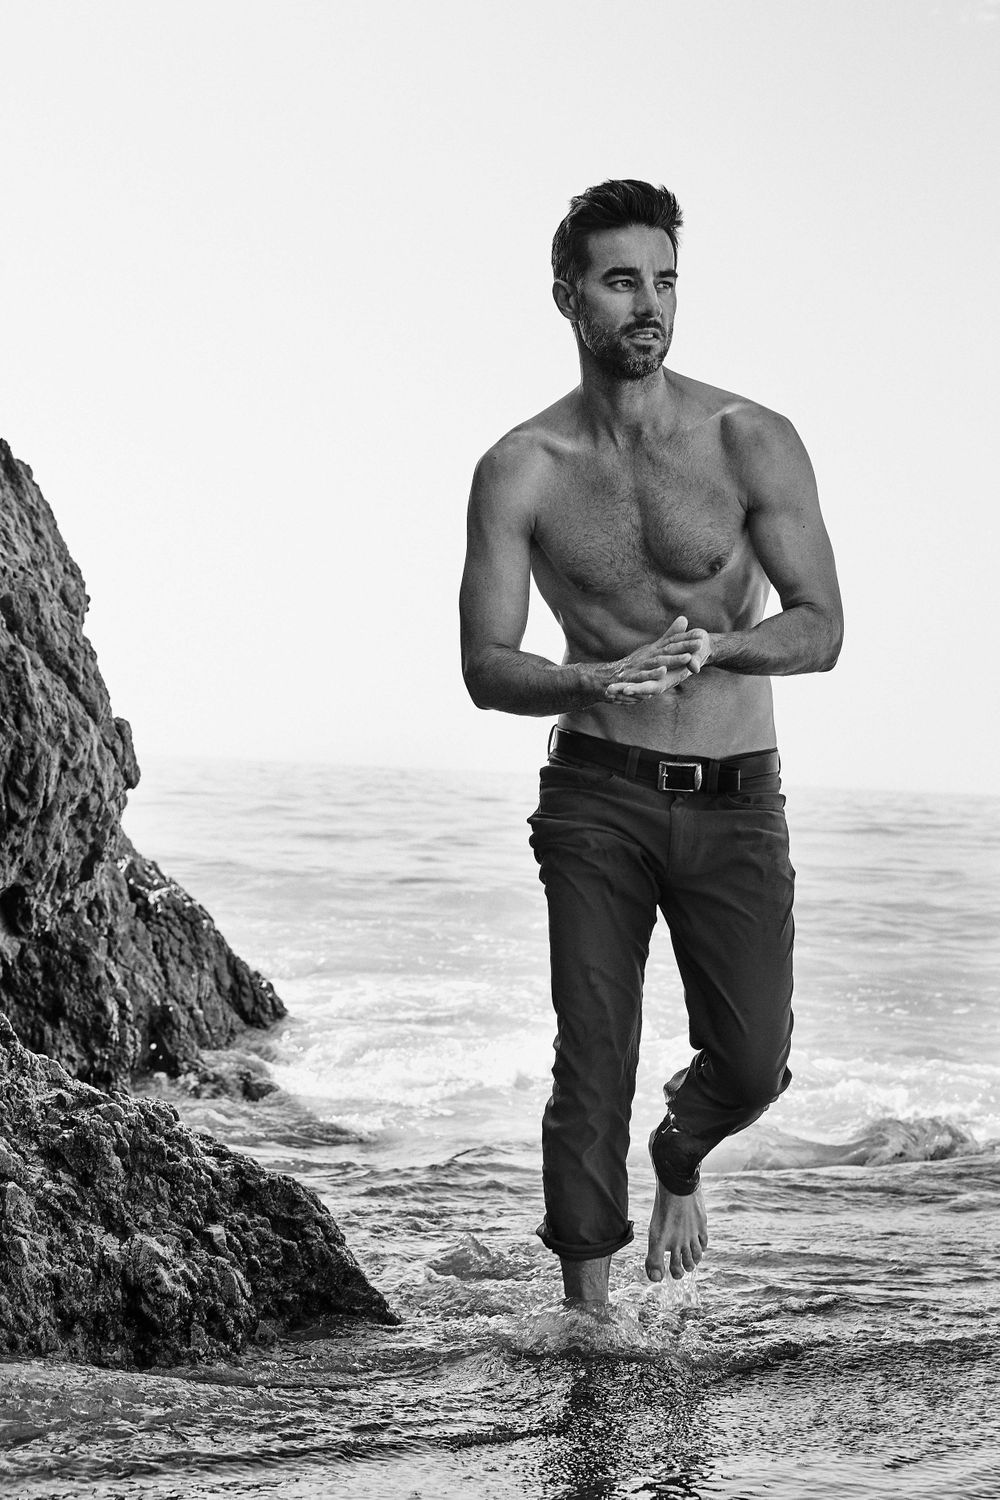 Model Colin Devitt from LA Models wearing Eddy Bauer trousers shirtless El Matador shirtless man of the world magazine